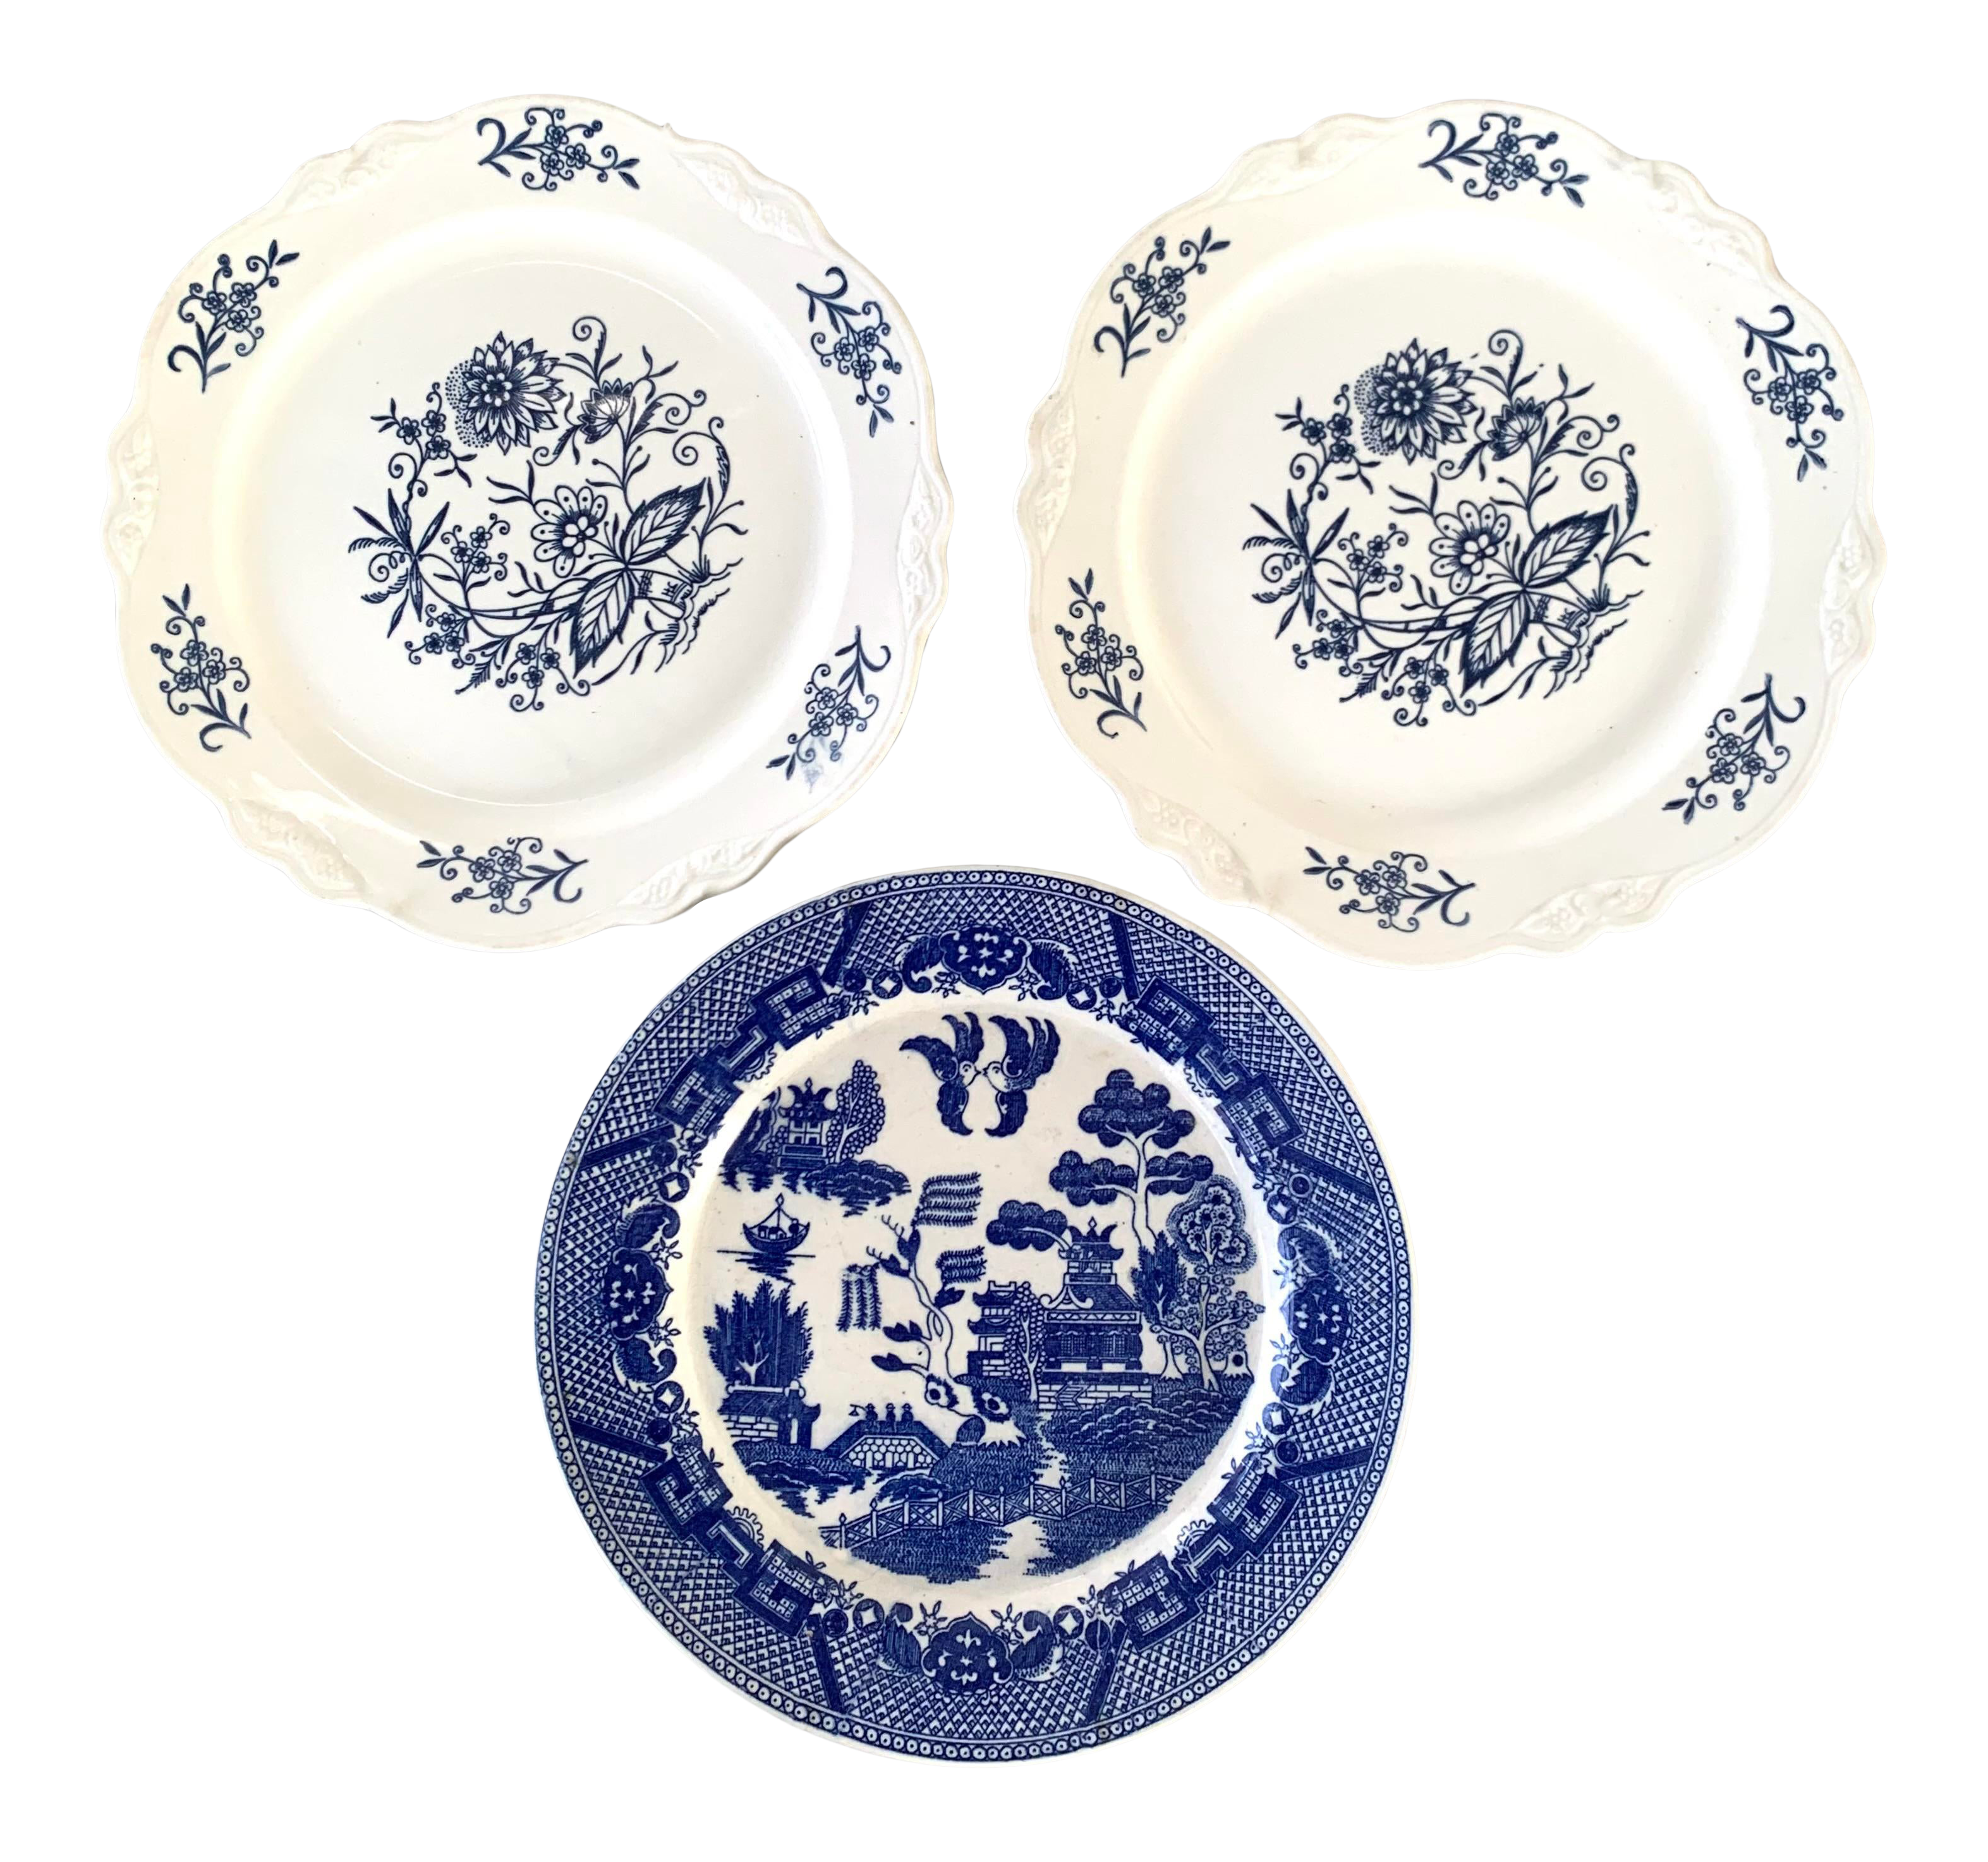 Antique Blue And White Plates Set Of 3 Chairish